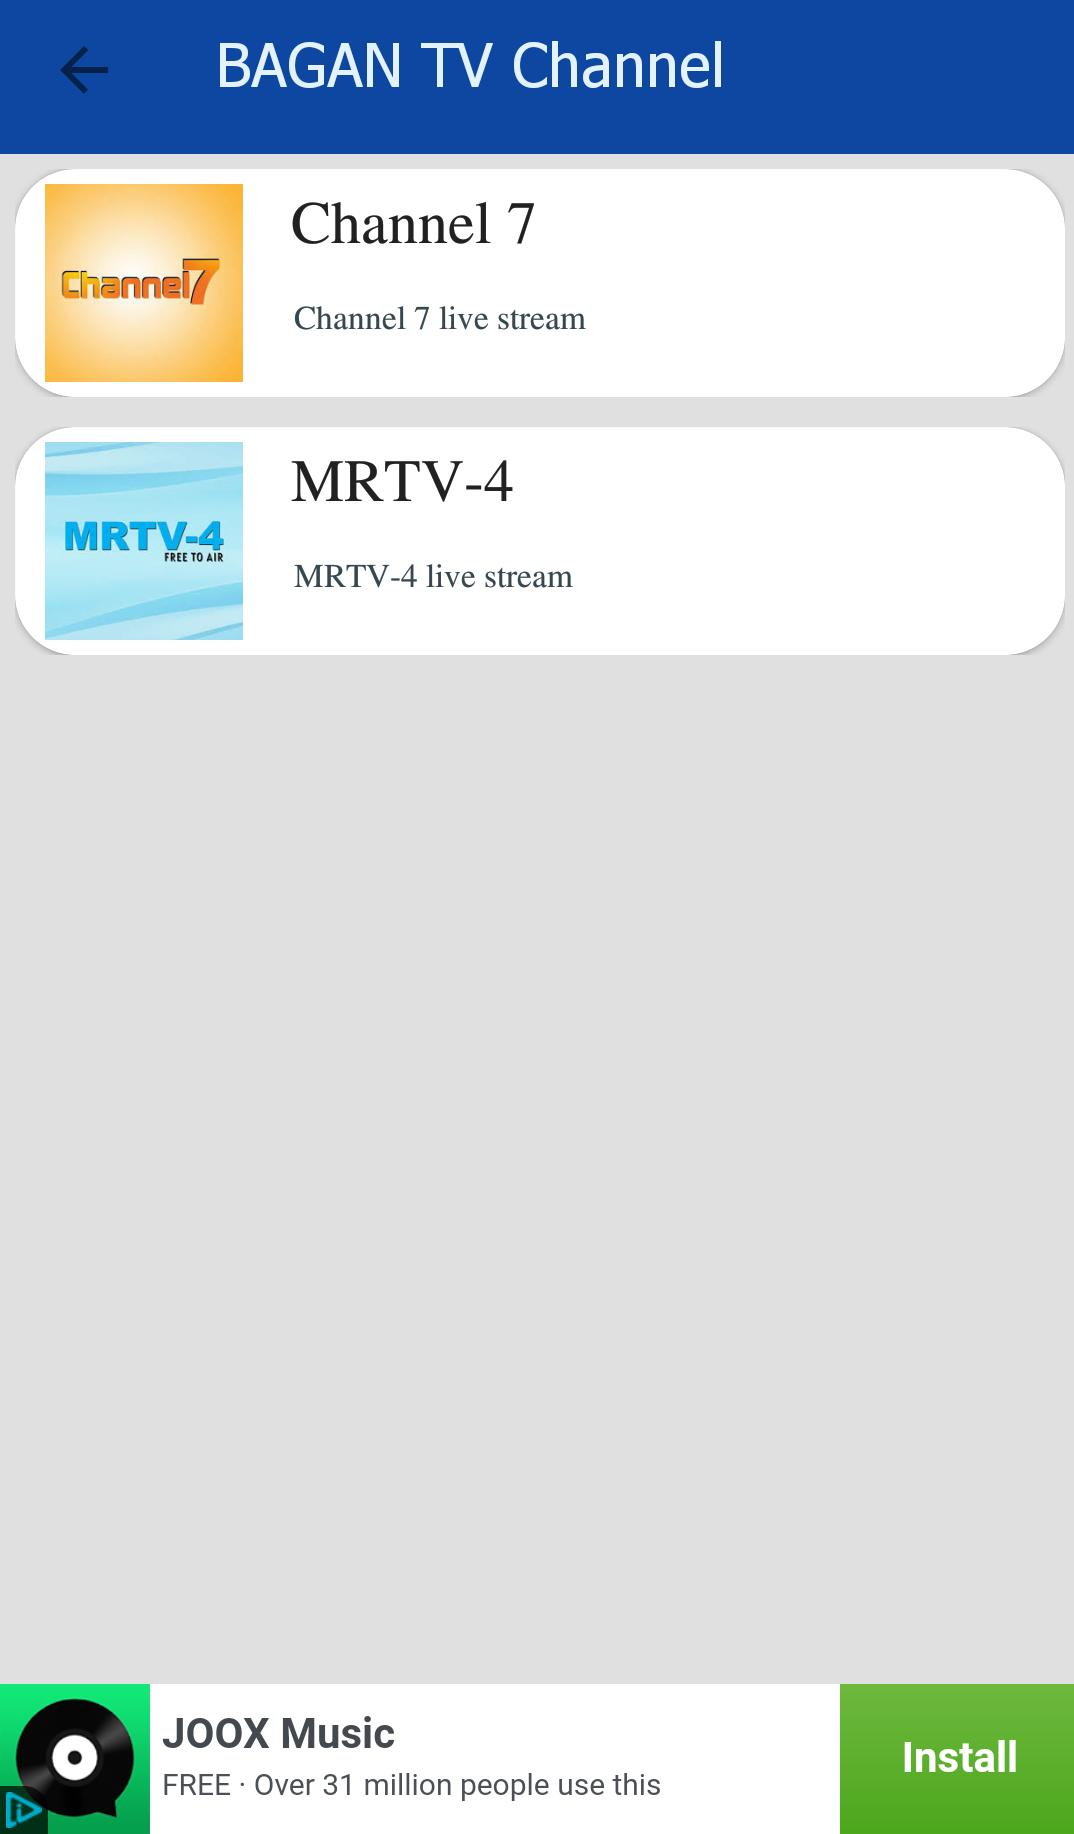 Myanmar TV & News for Android - APK Download